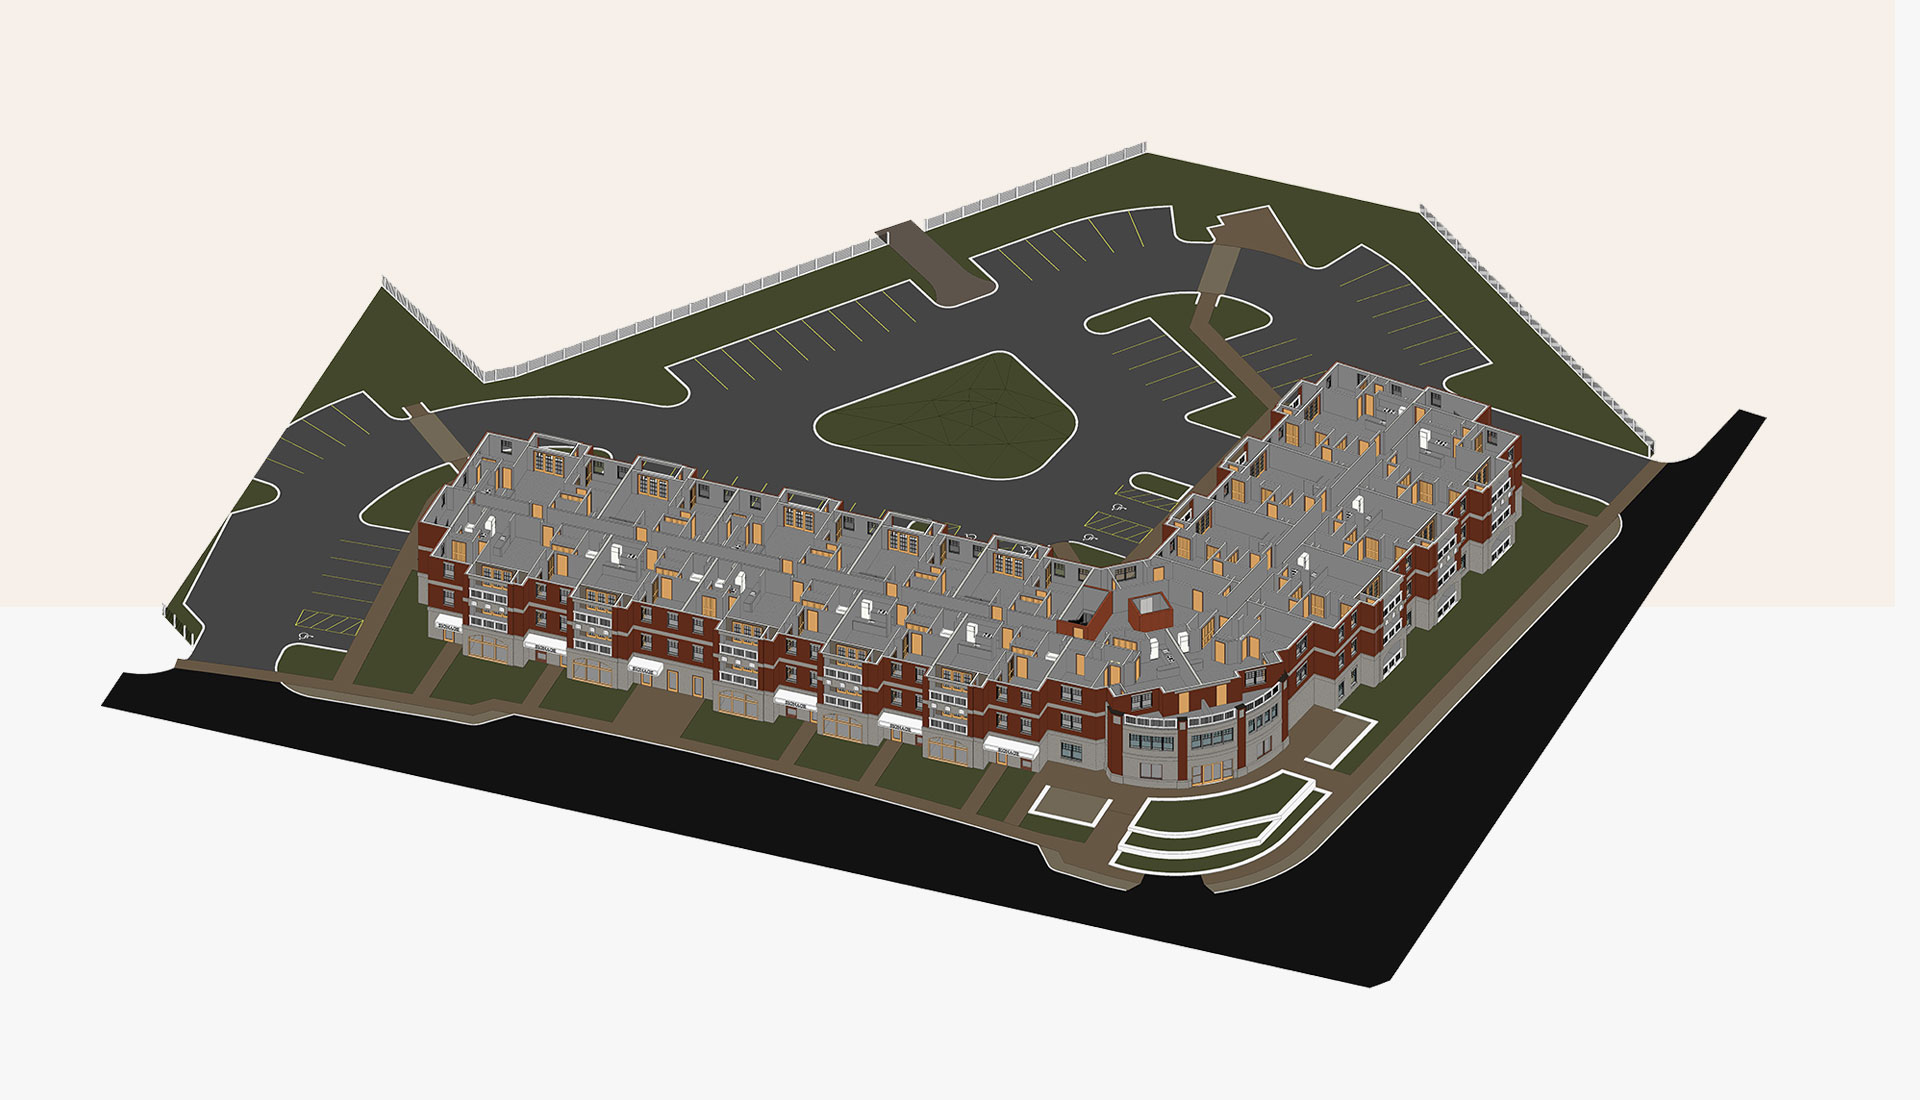 Sectional-View_Third-Floor_3D-BIM-Model_Residential-Project_Architectural-Revit-Modeling-by-United-BIM